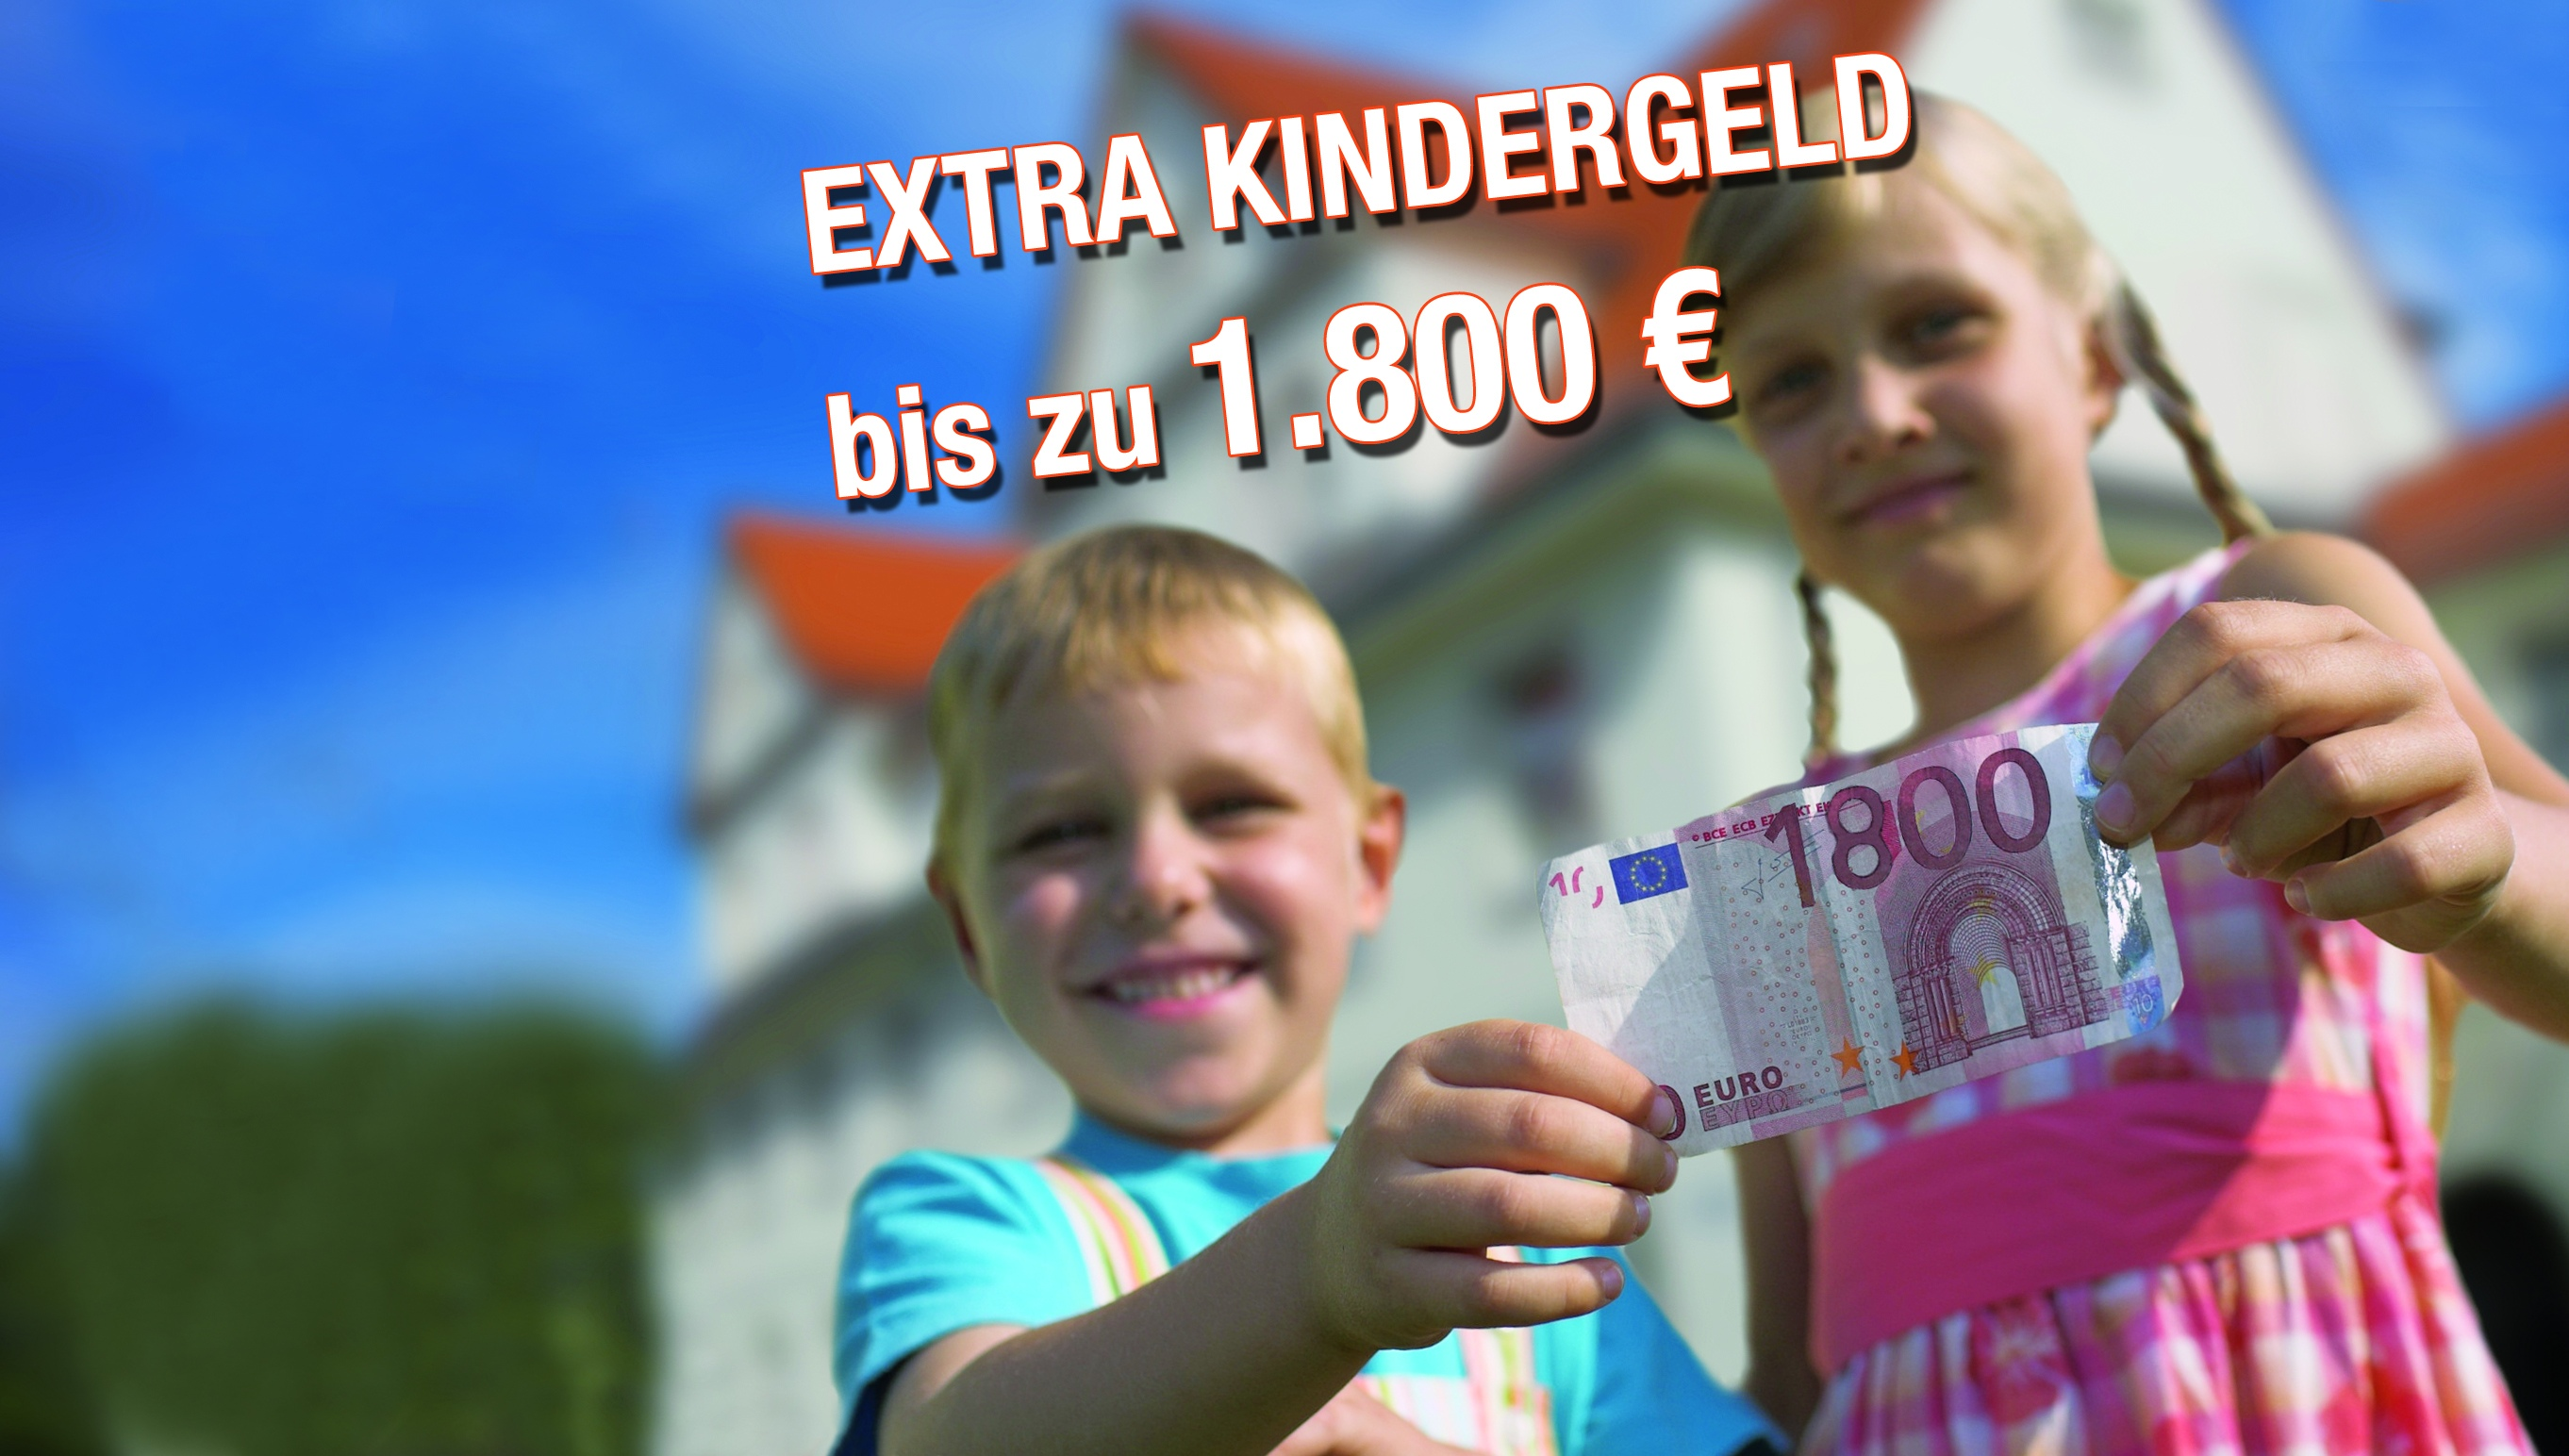 Extra kindergeld in chemnitz for Ecksofa bis 800 euro